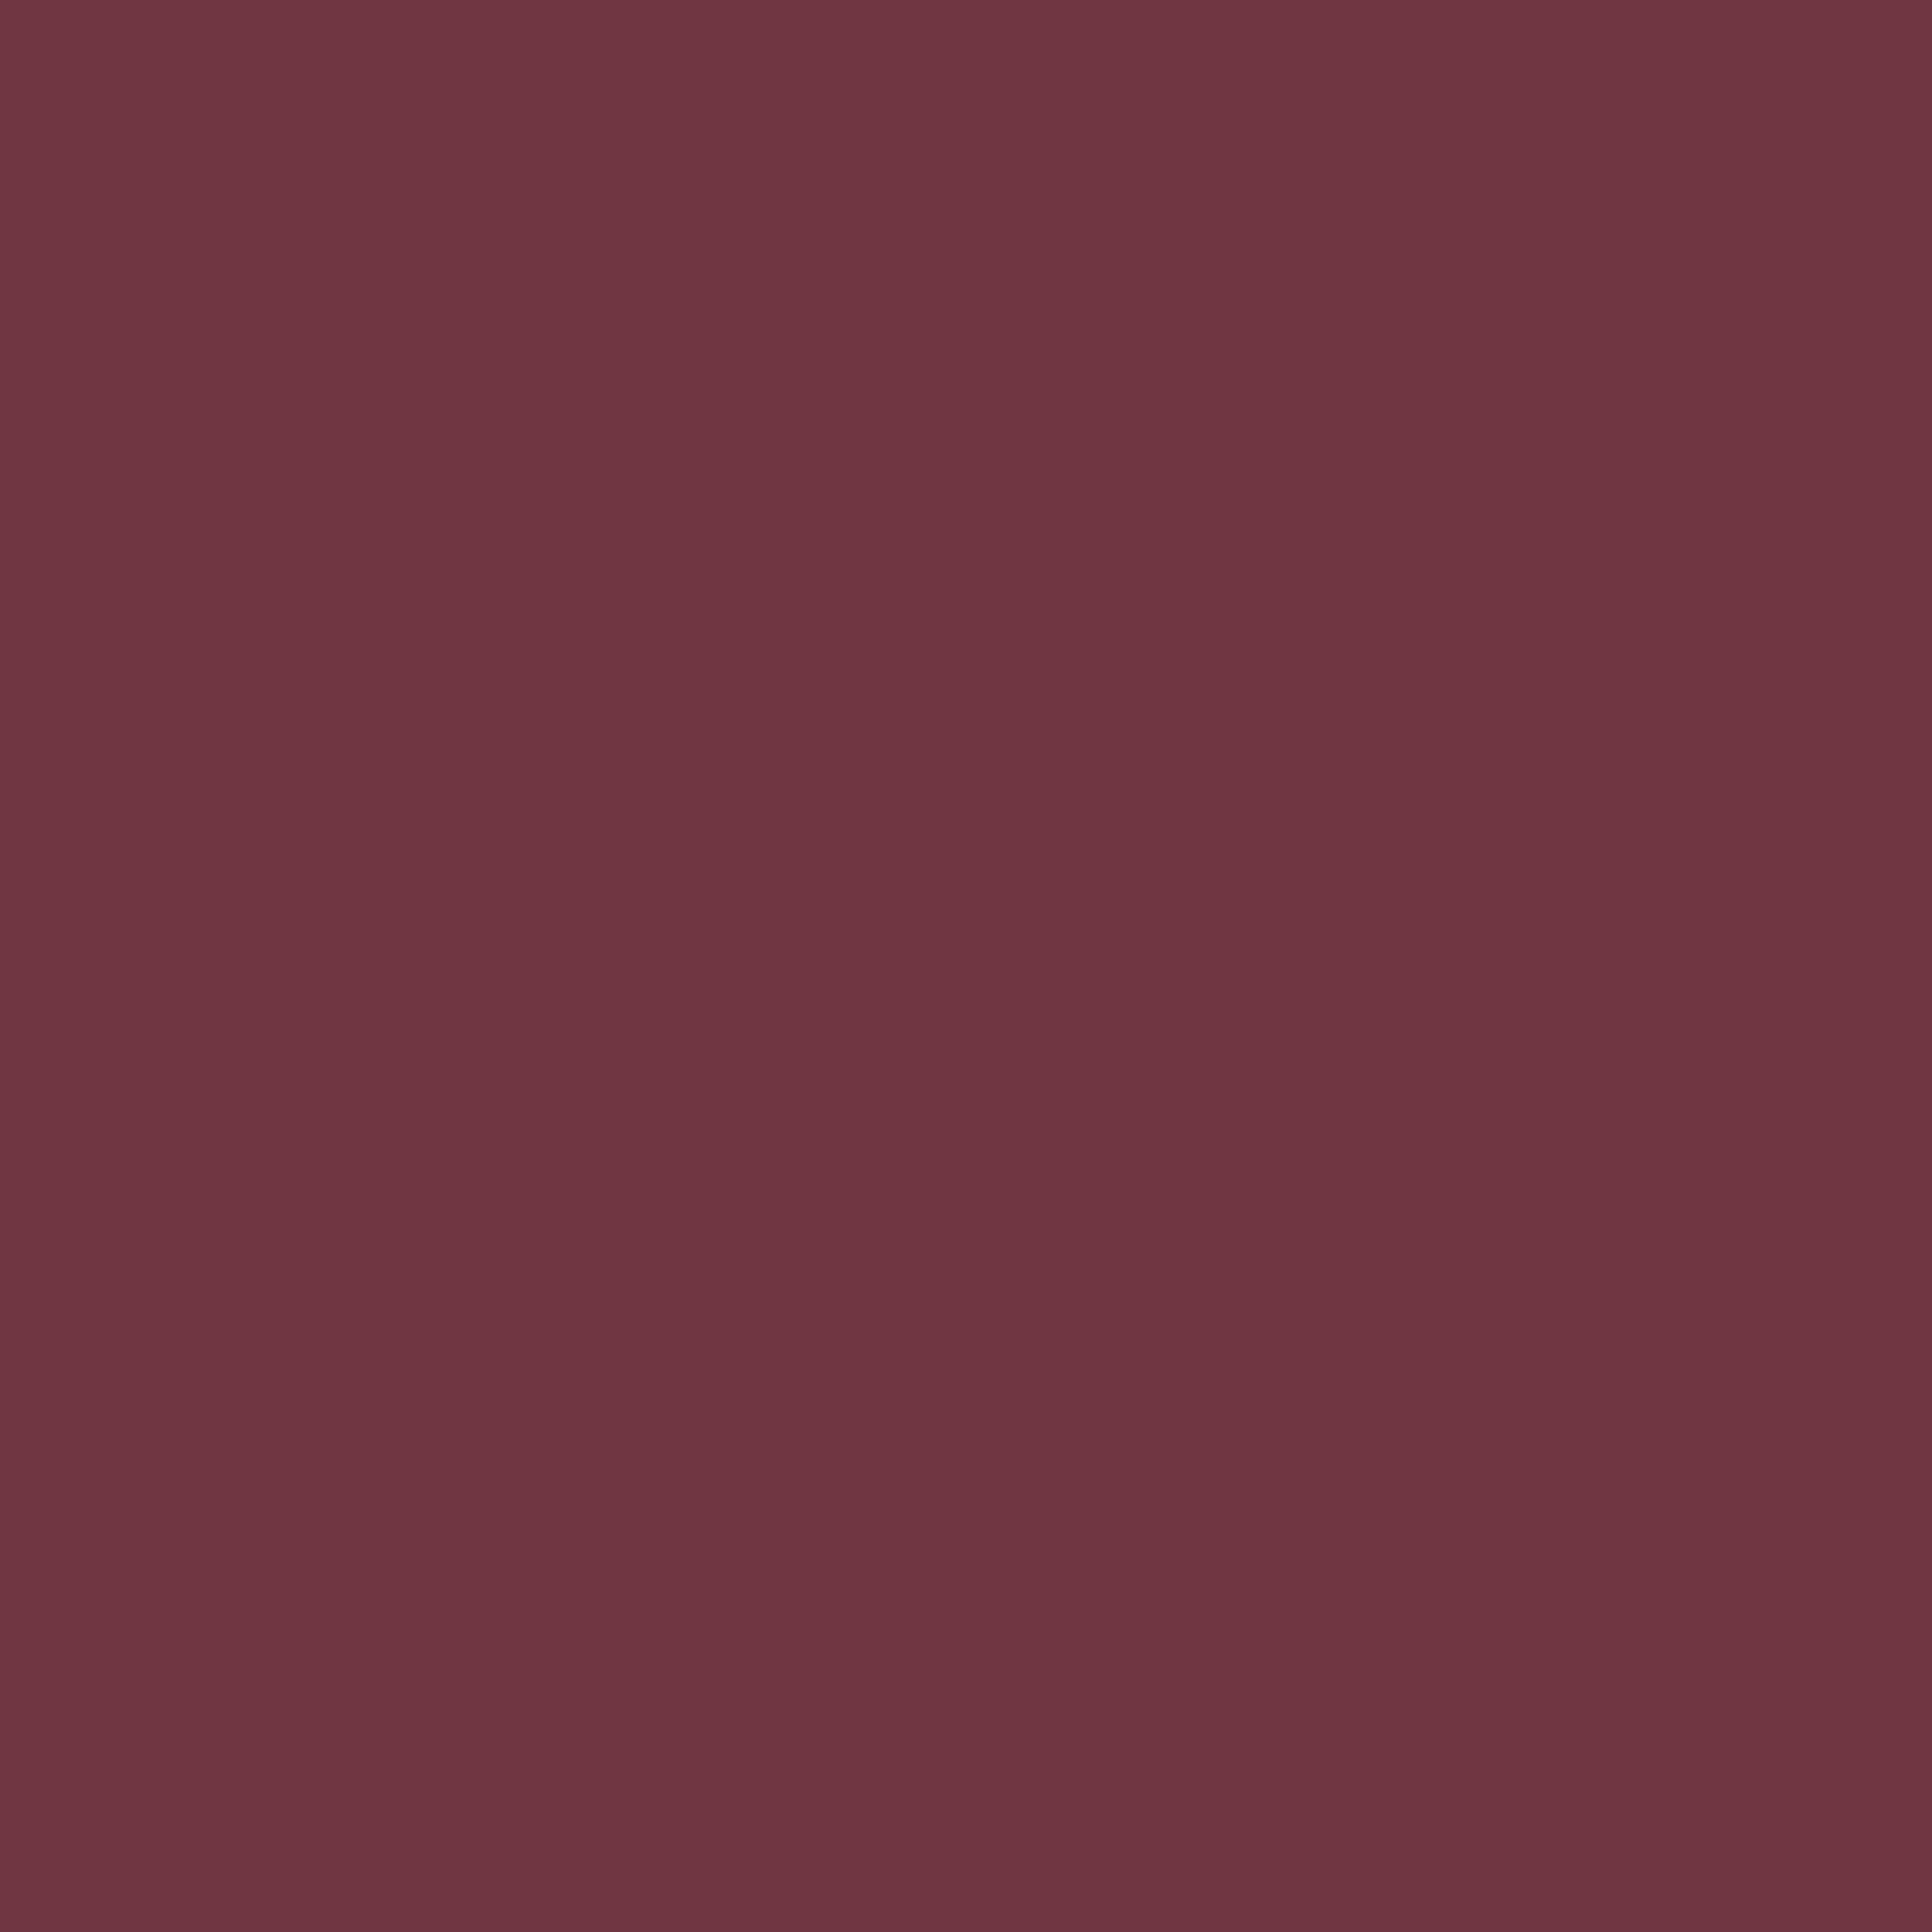 3600x3600 Catawba Solid Color Background